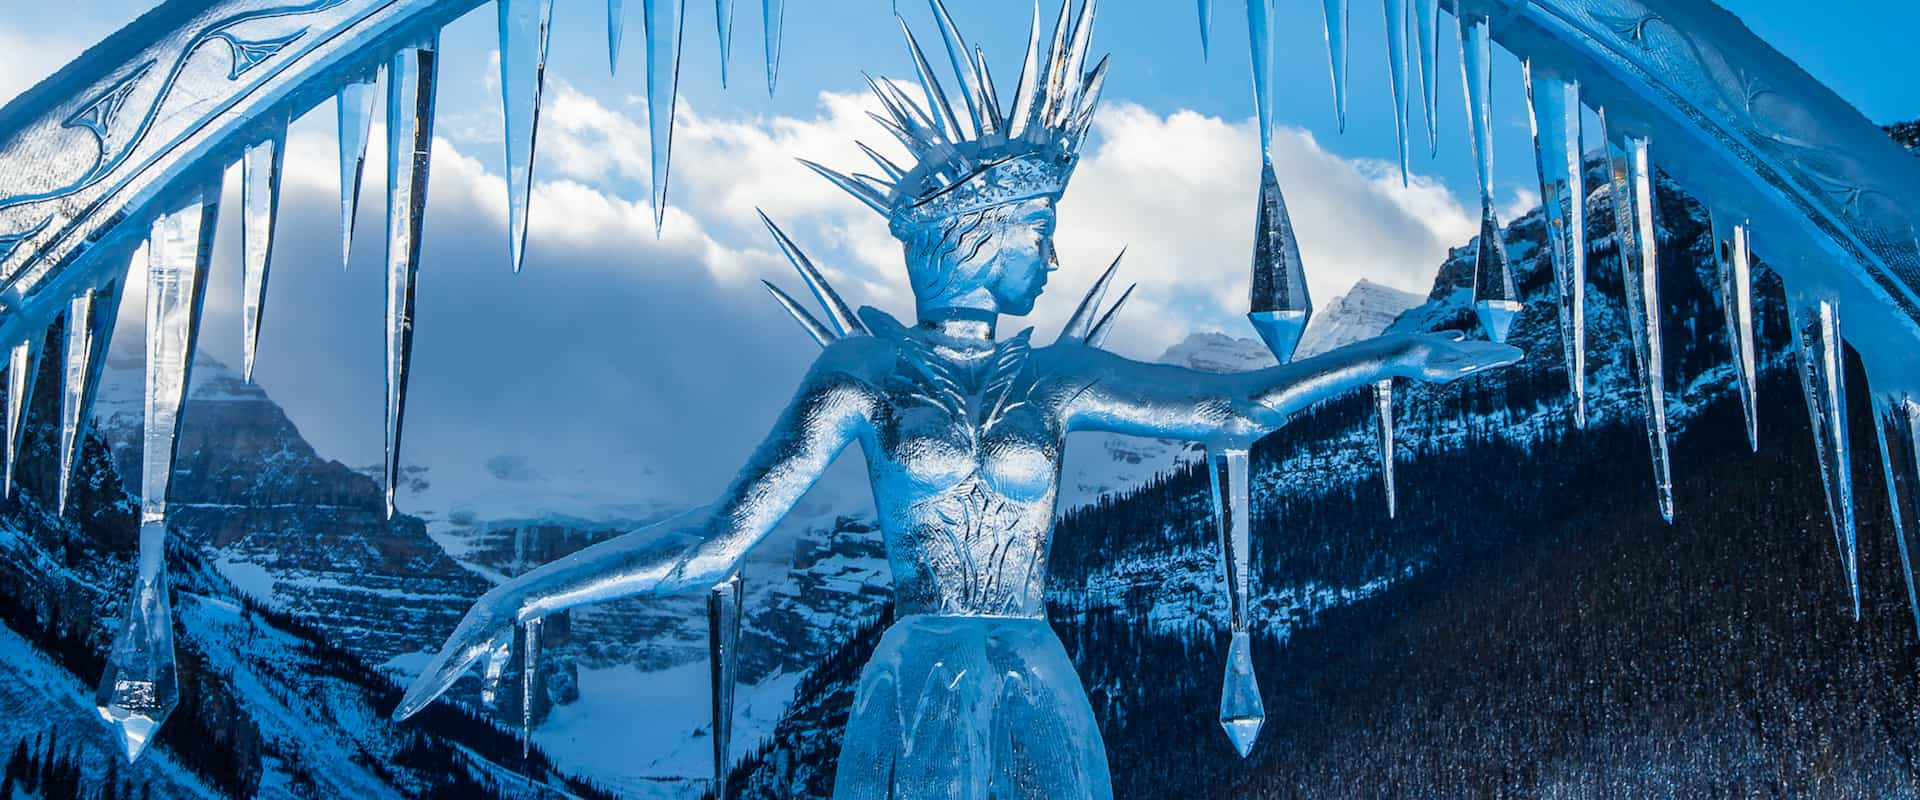 See ice sculptures at Lake Louise during the Ice Magic Festival